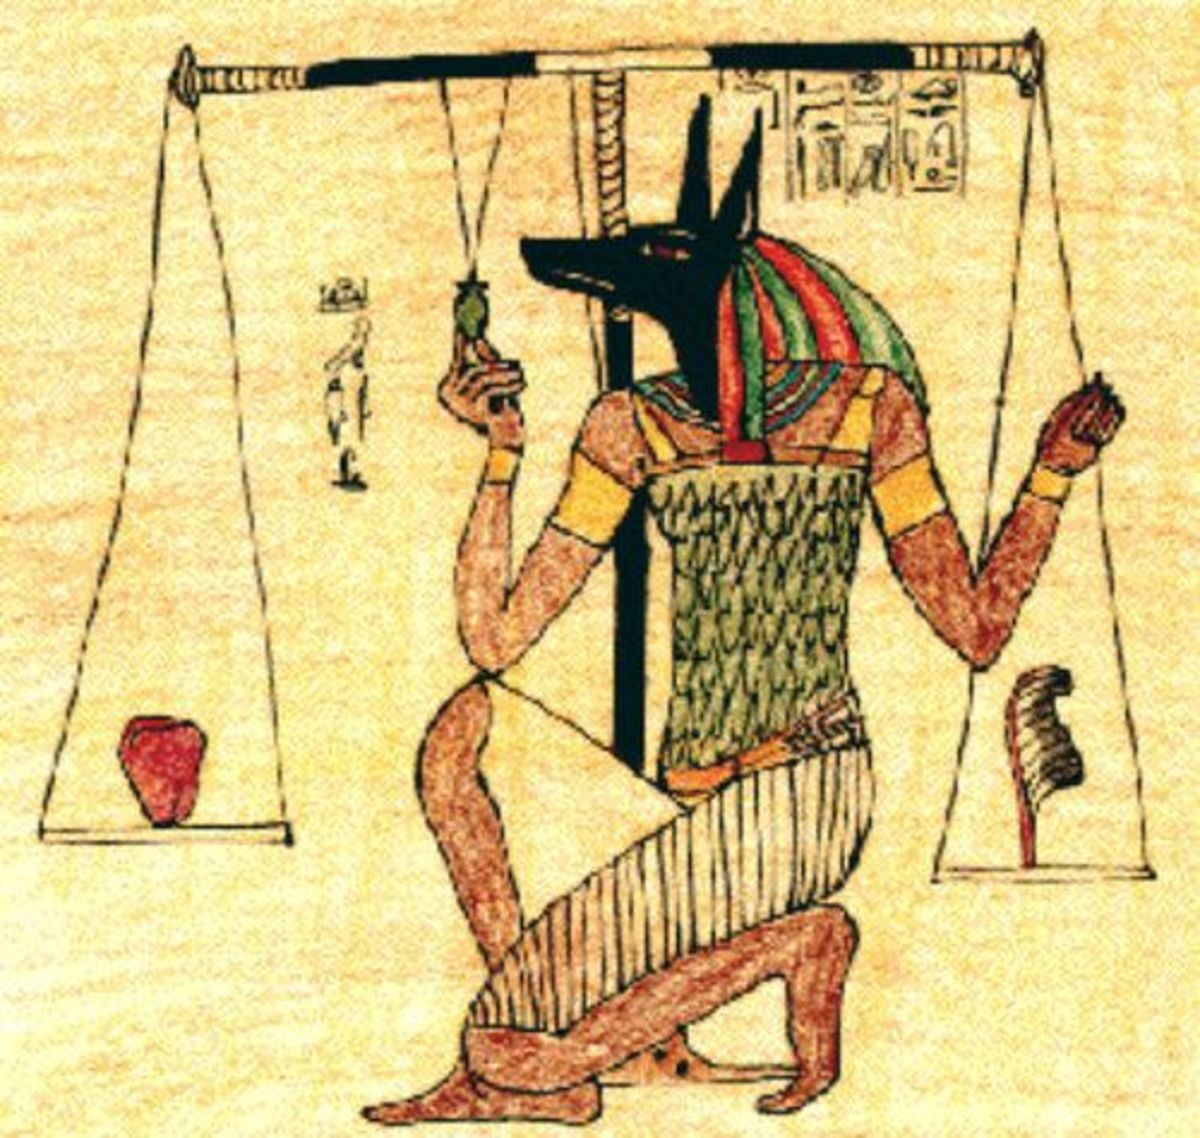 Anubis at his scales